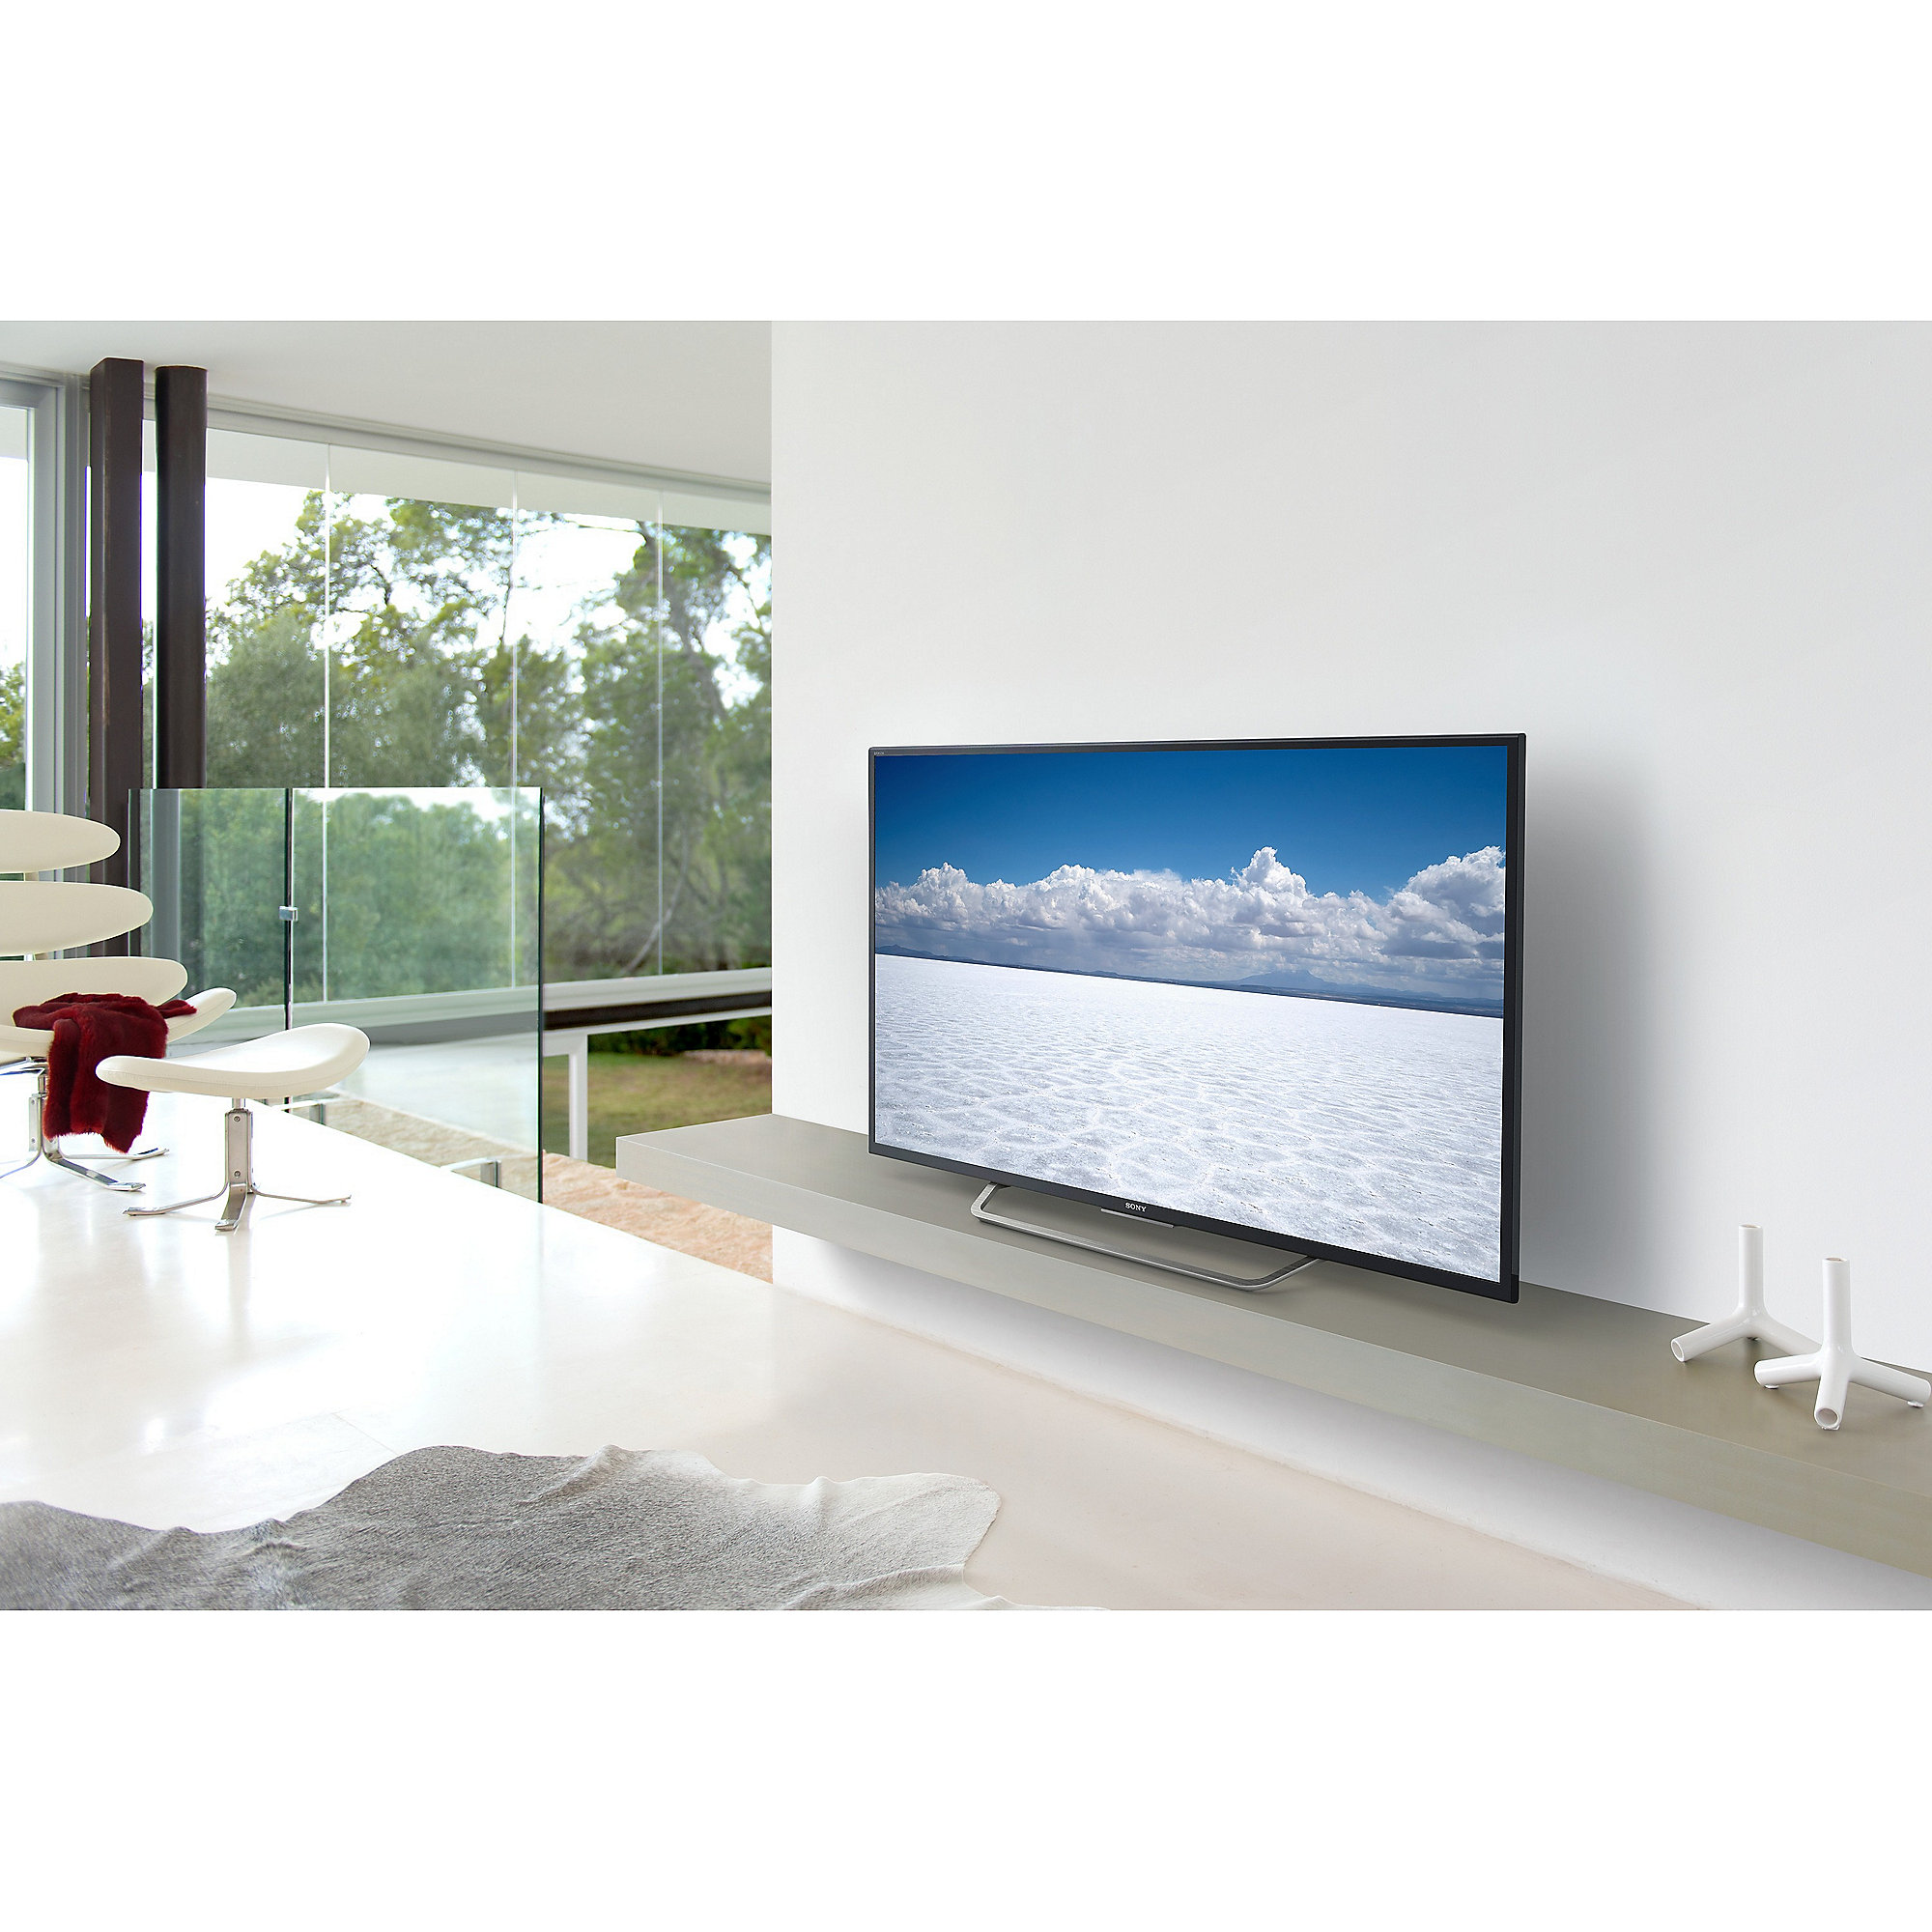 "SONY 4K Bravia 65XD7505 164cm 65"" UHD 2xDVB-T2HD/C/S2 800Hz Android"